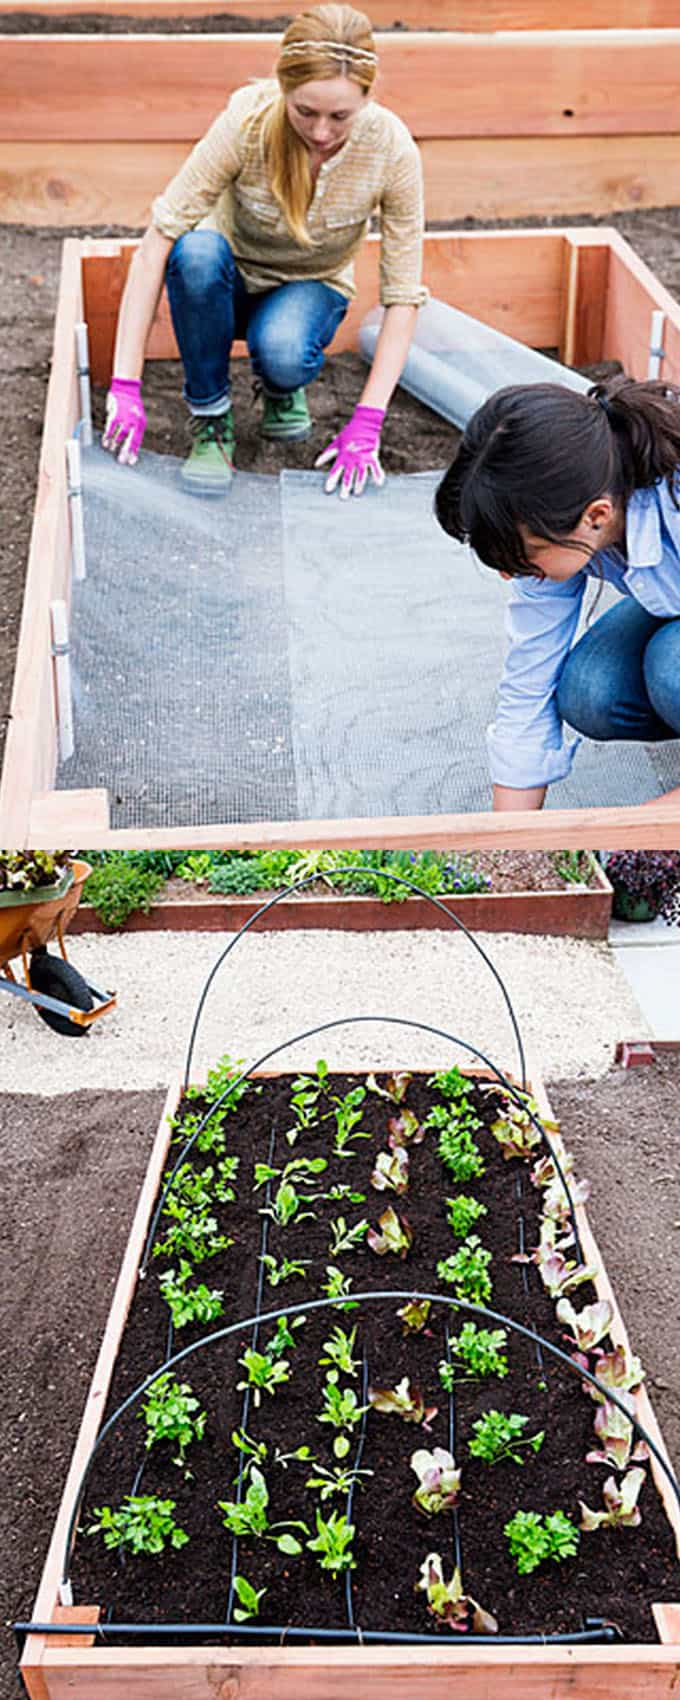 Raised Beds with PVC pipes | How to Build a Raised Vegetable Garden Bed | 39+ Simple & Cheap Raised Vegetable Garden Bed Ideas - farmfoodfamily.com